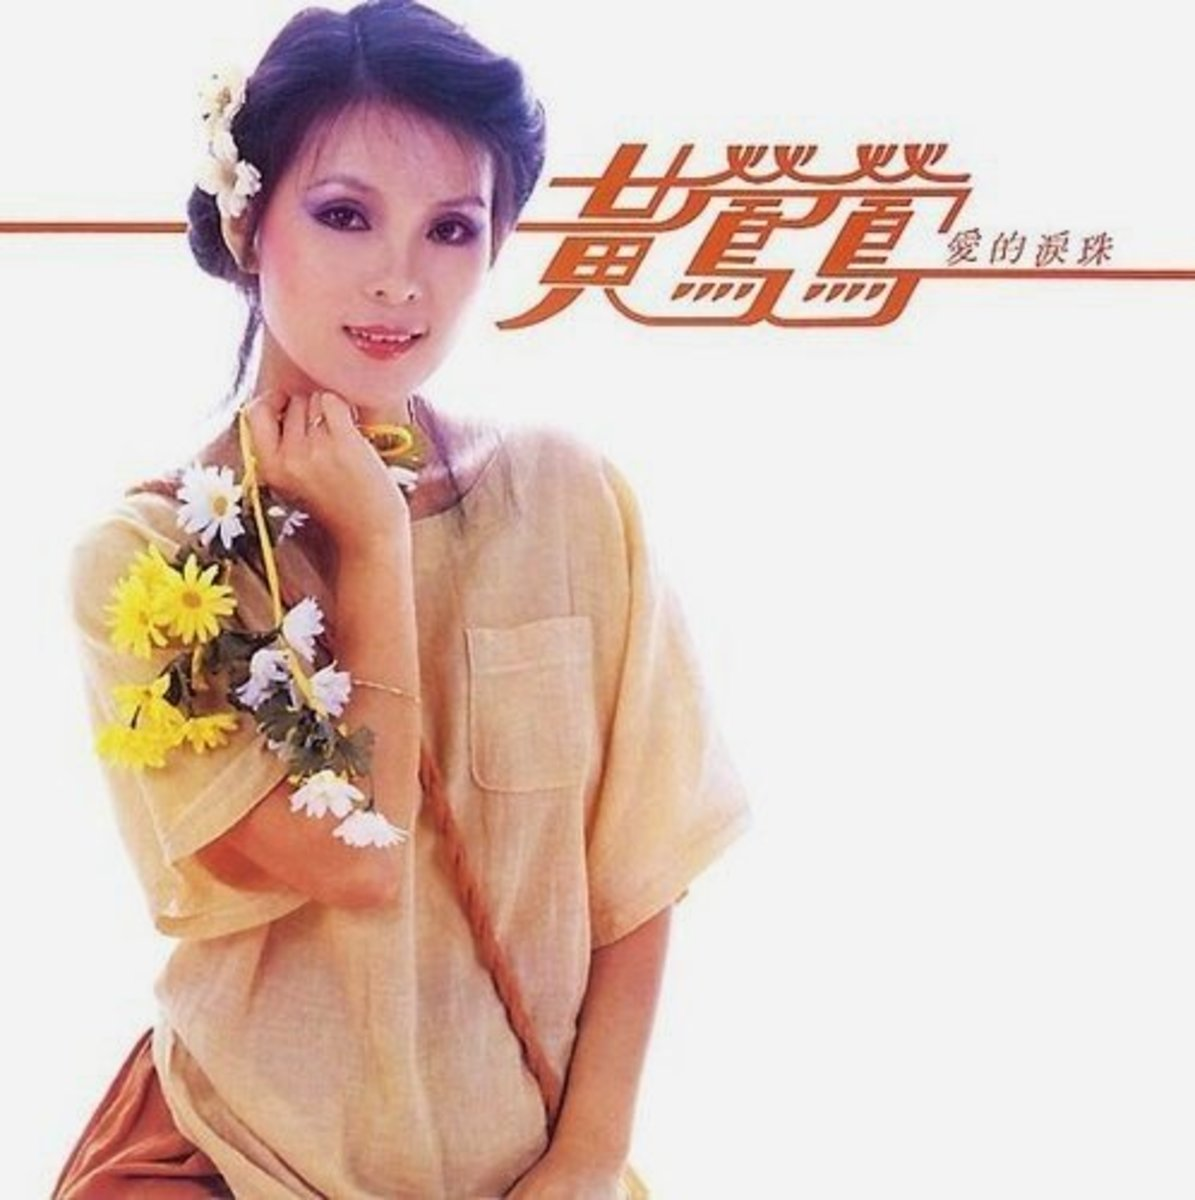 Biography of Tracy Huang, the Sultry Asian Diva